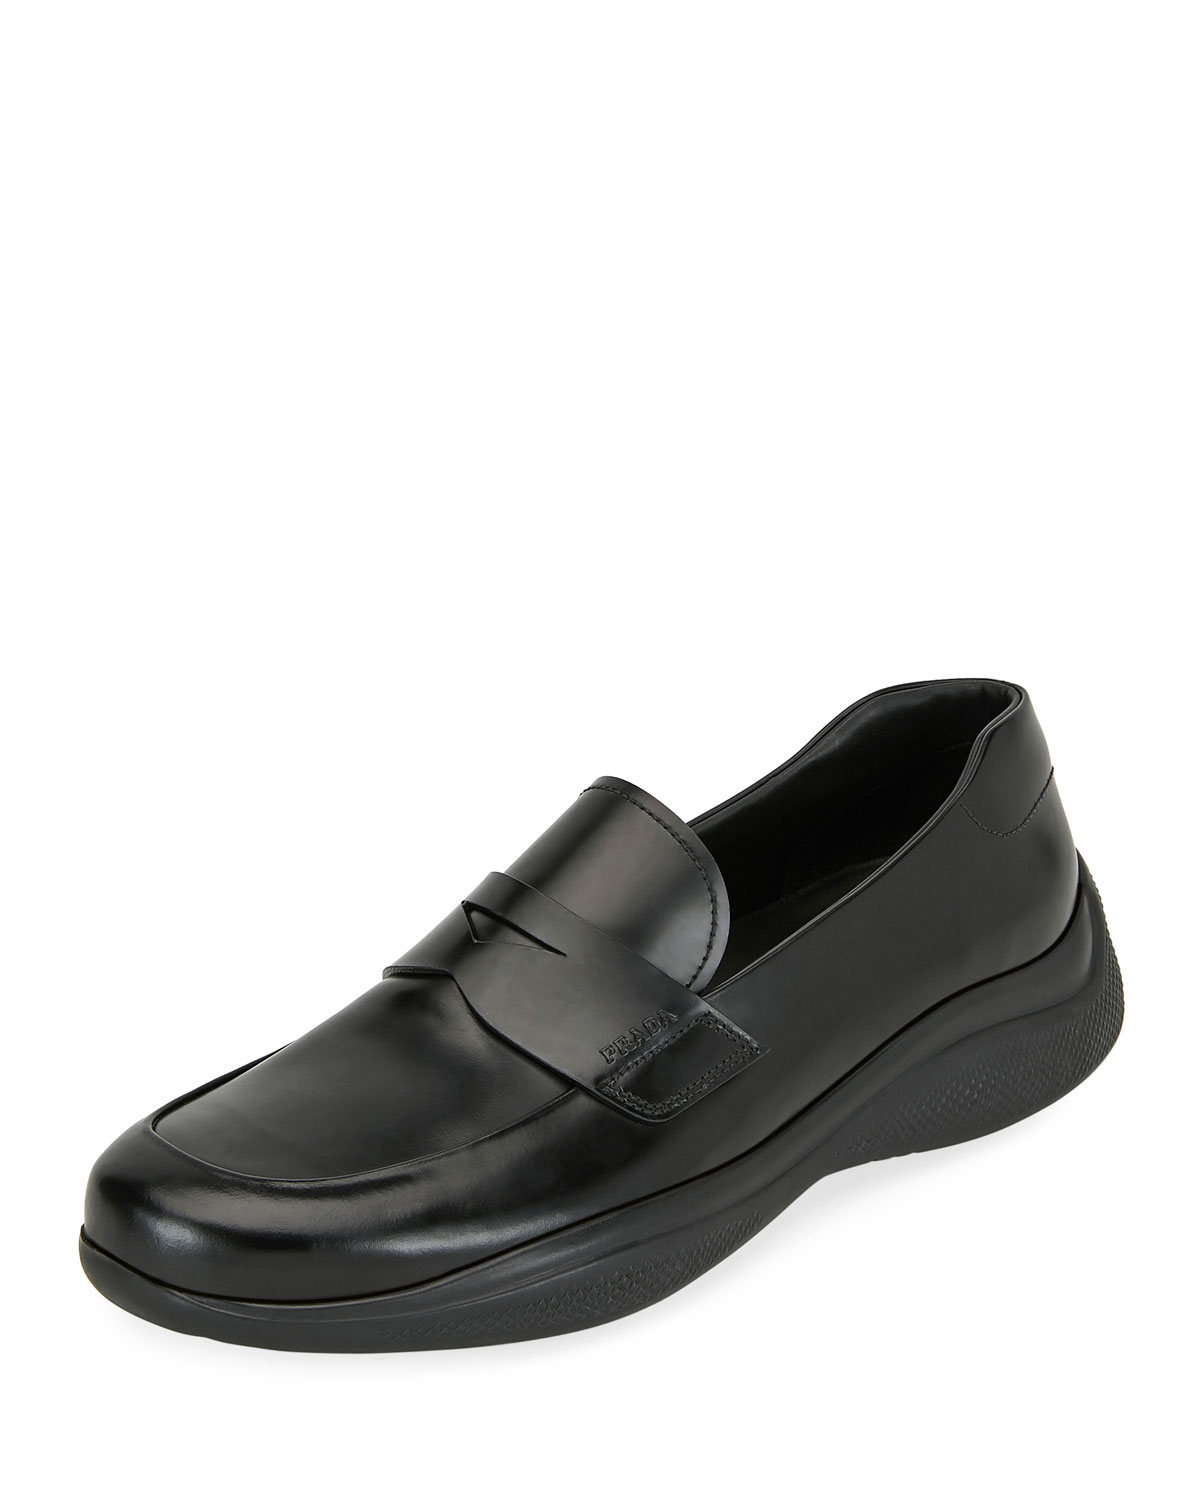 Spazzolato Leather Penny Loafers